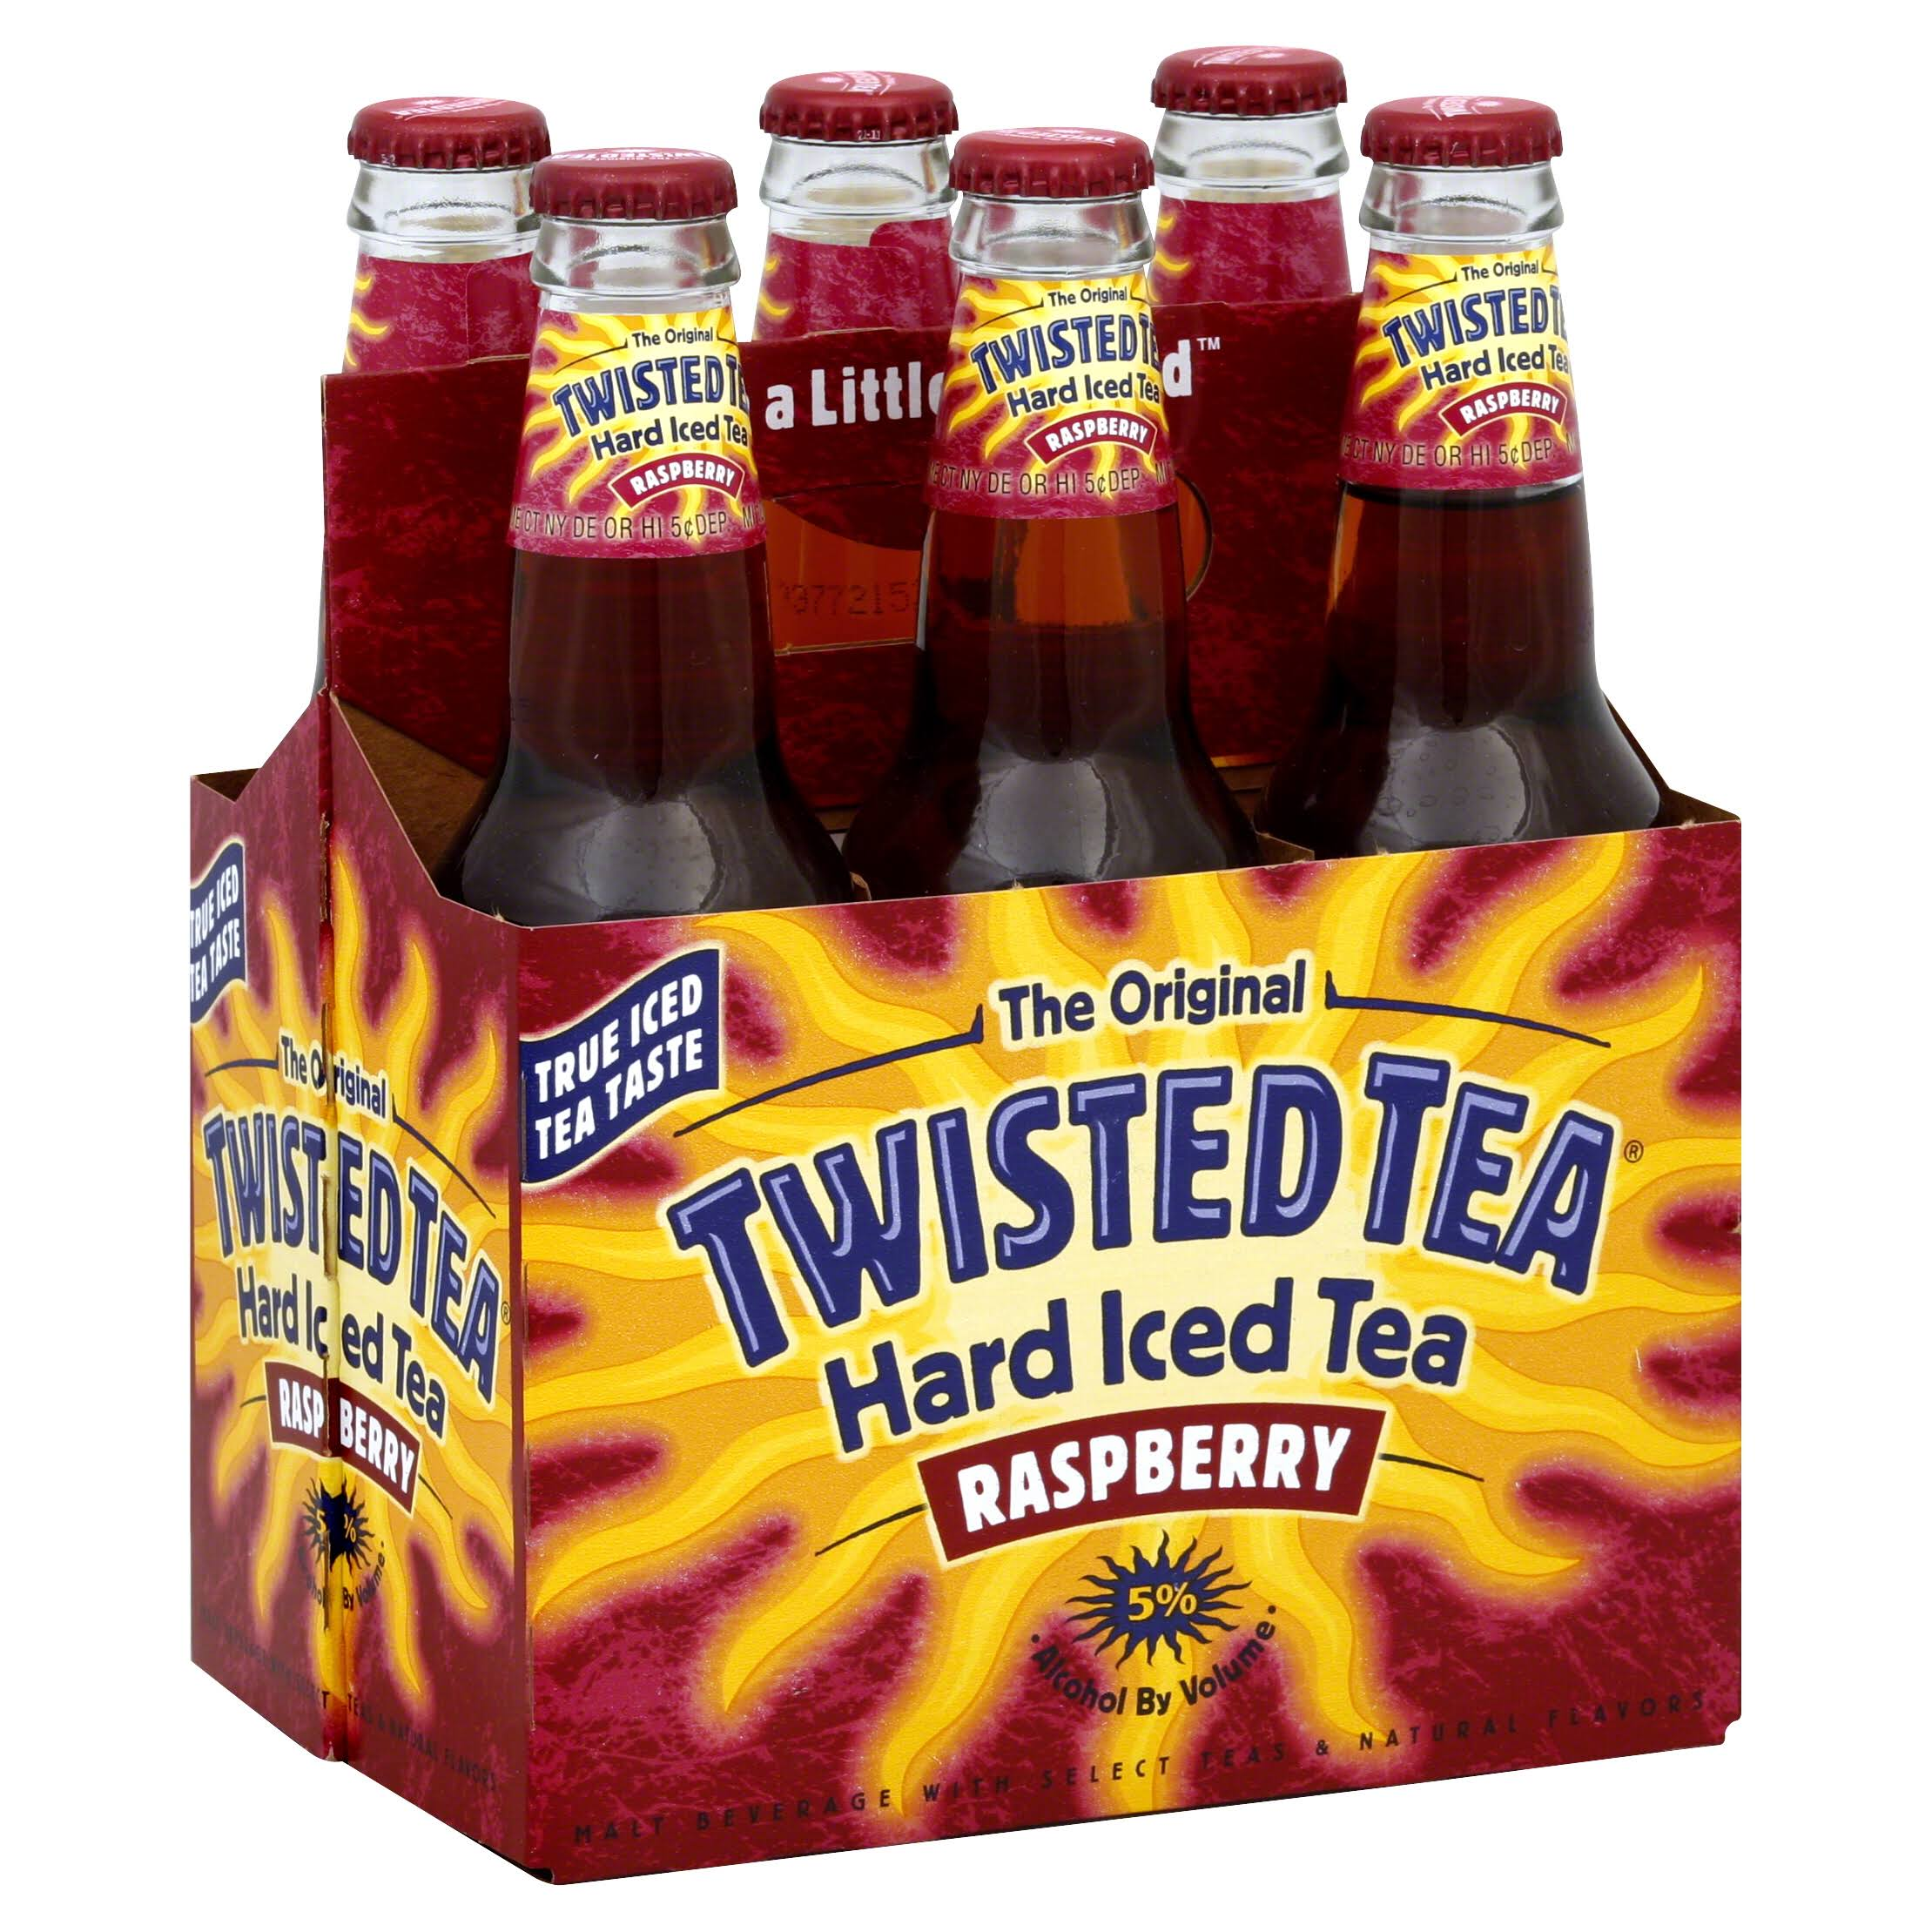 Boston Twisted Tea - Raspberry, 6pk, 12oz